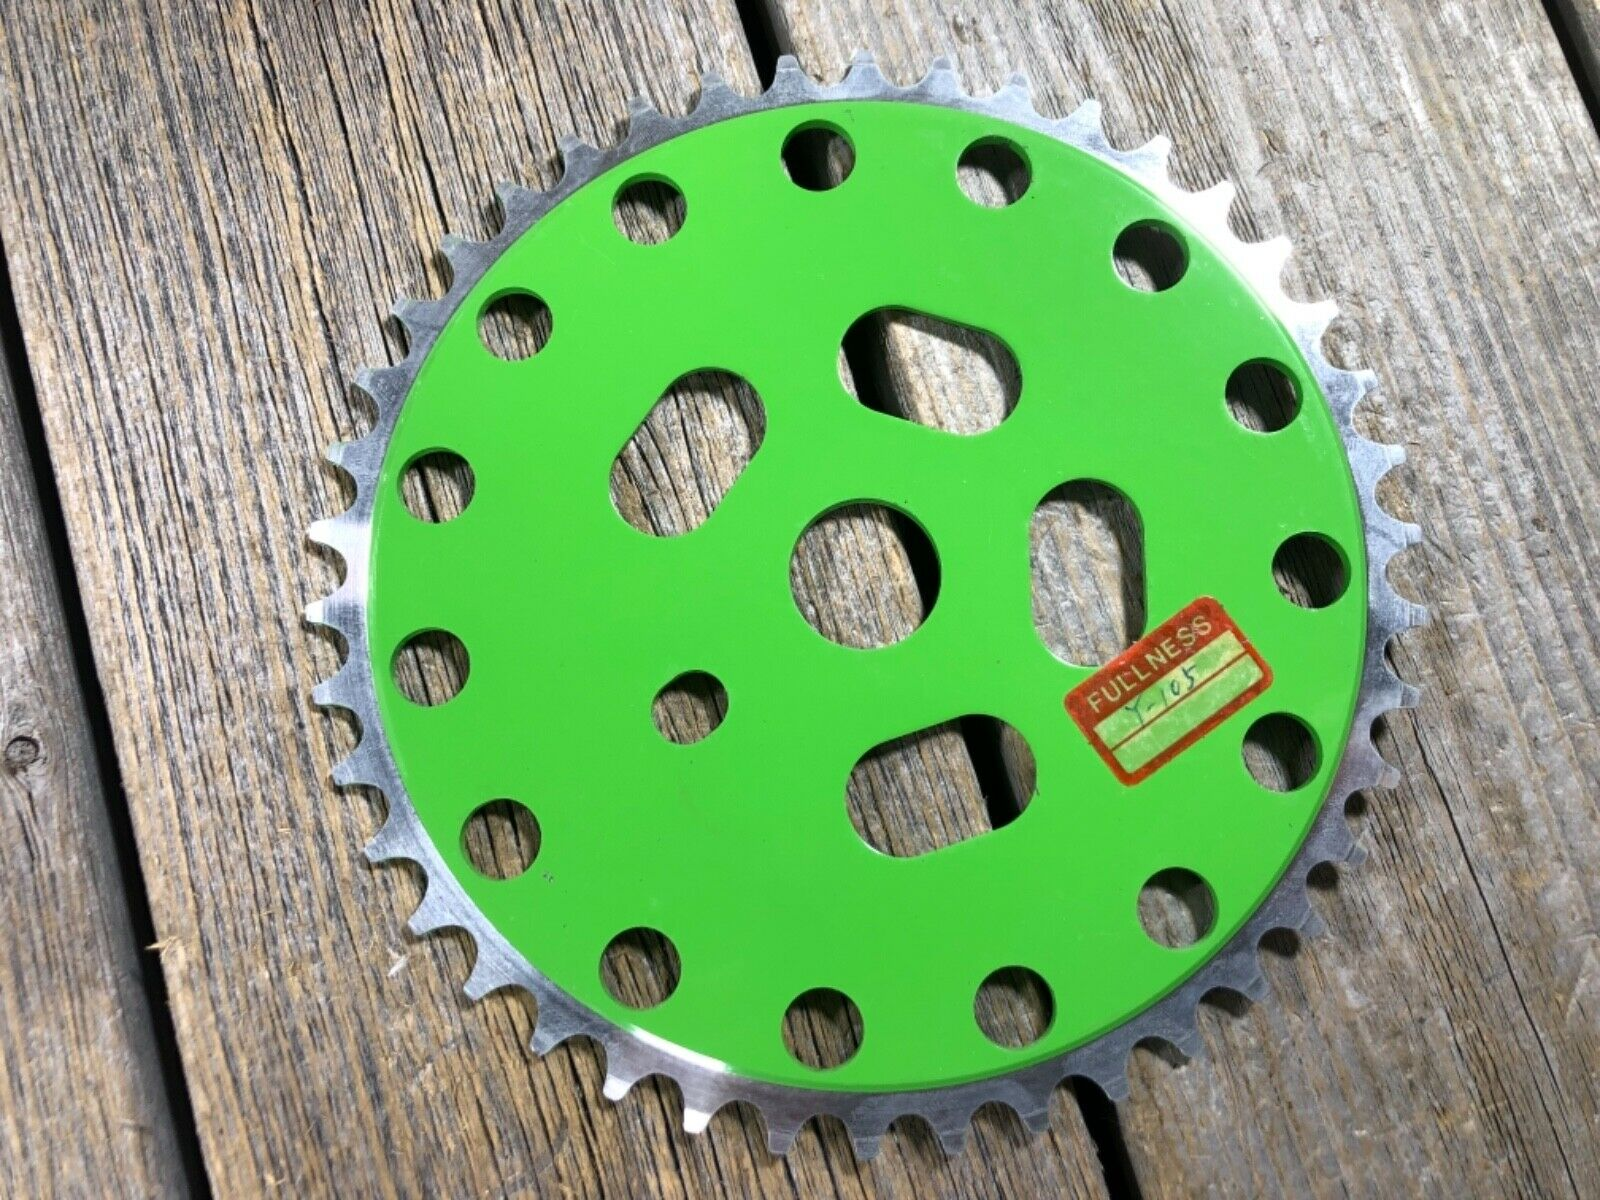 OLD SCHOOL BMX CHAINRING 42T  ALLOY POWER DISC OLDSCHOOL BMX NOS GREEN OPC  we offer various famous brand